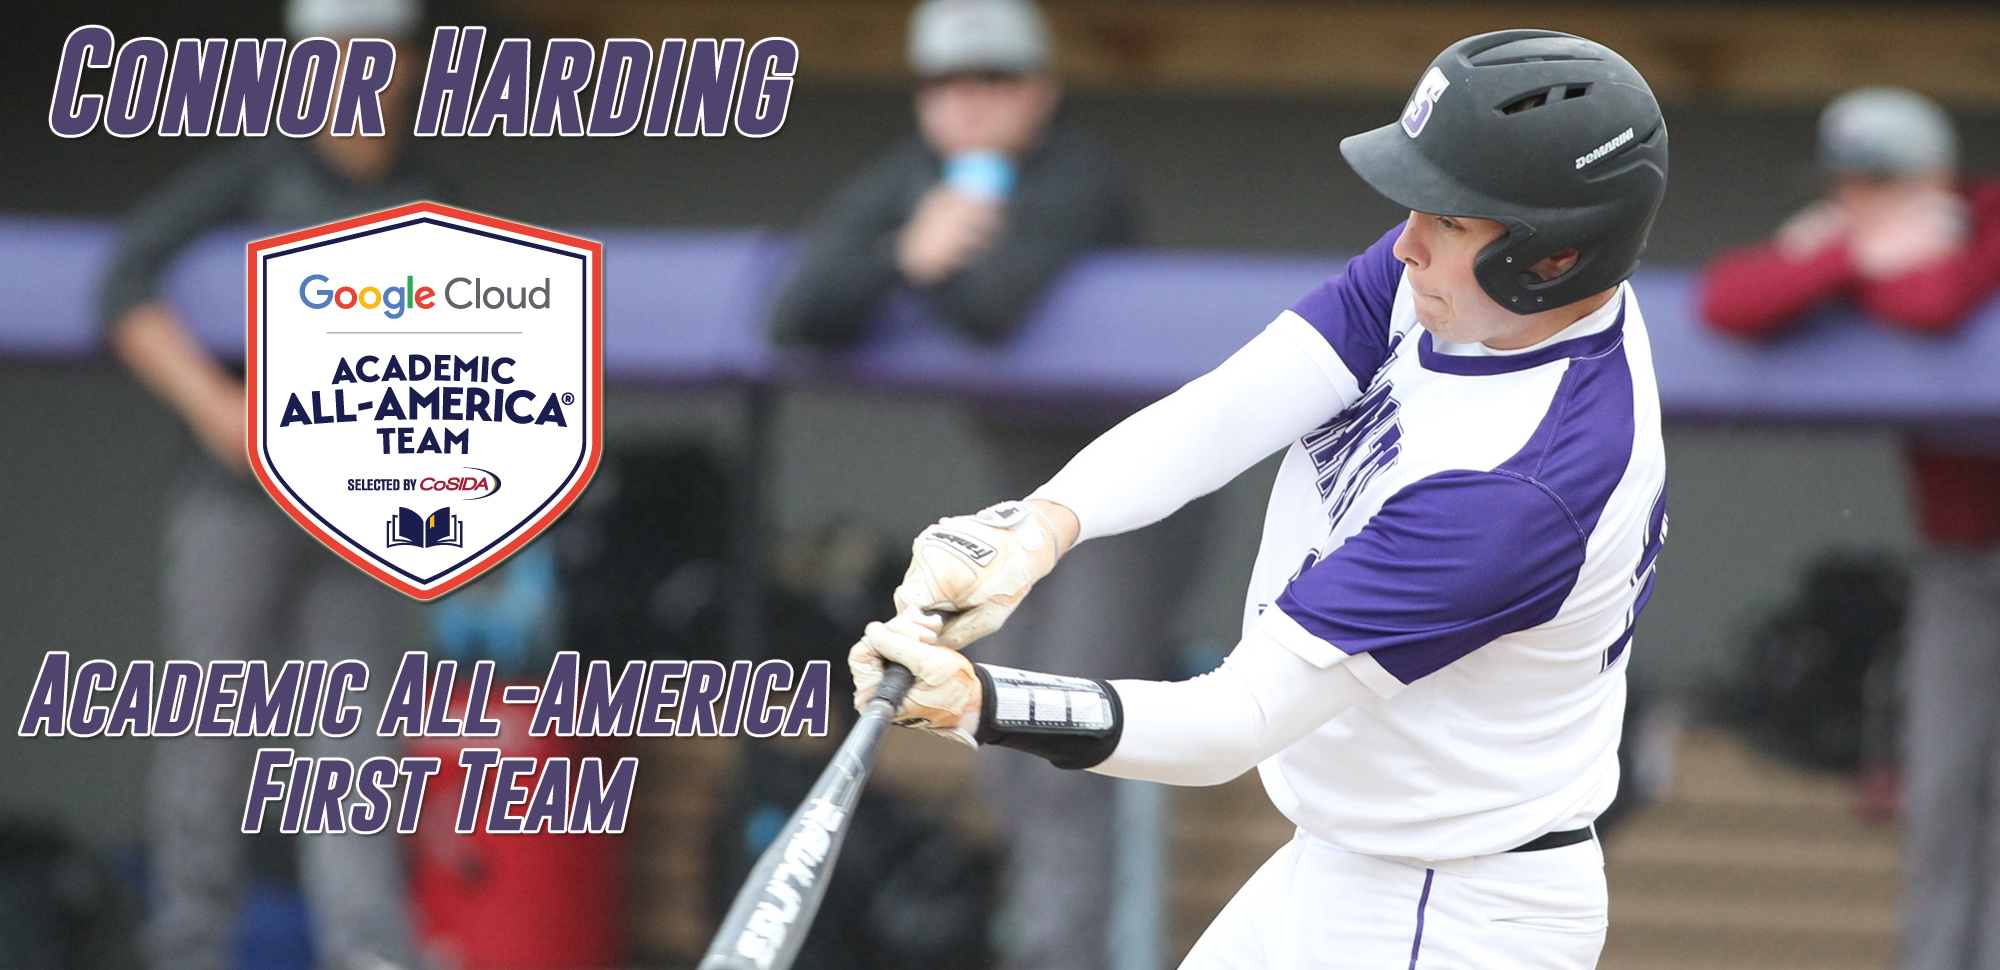 Connor Harding Academic All-America First Team Selection.